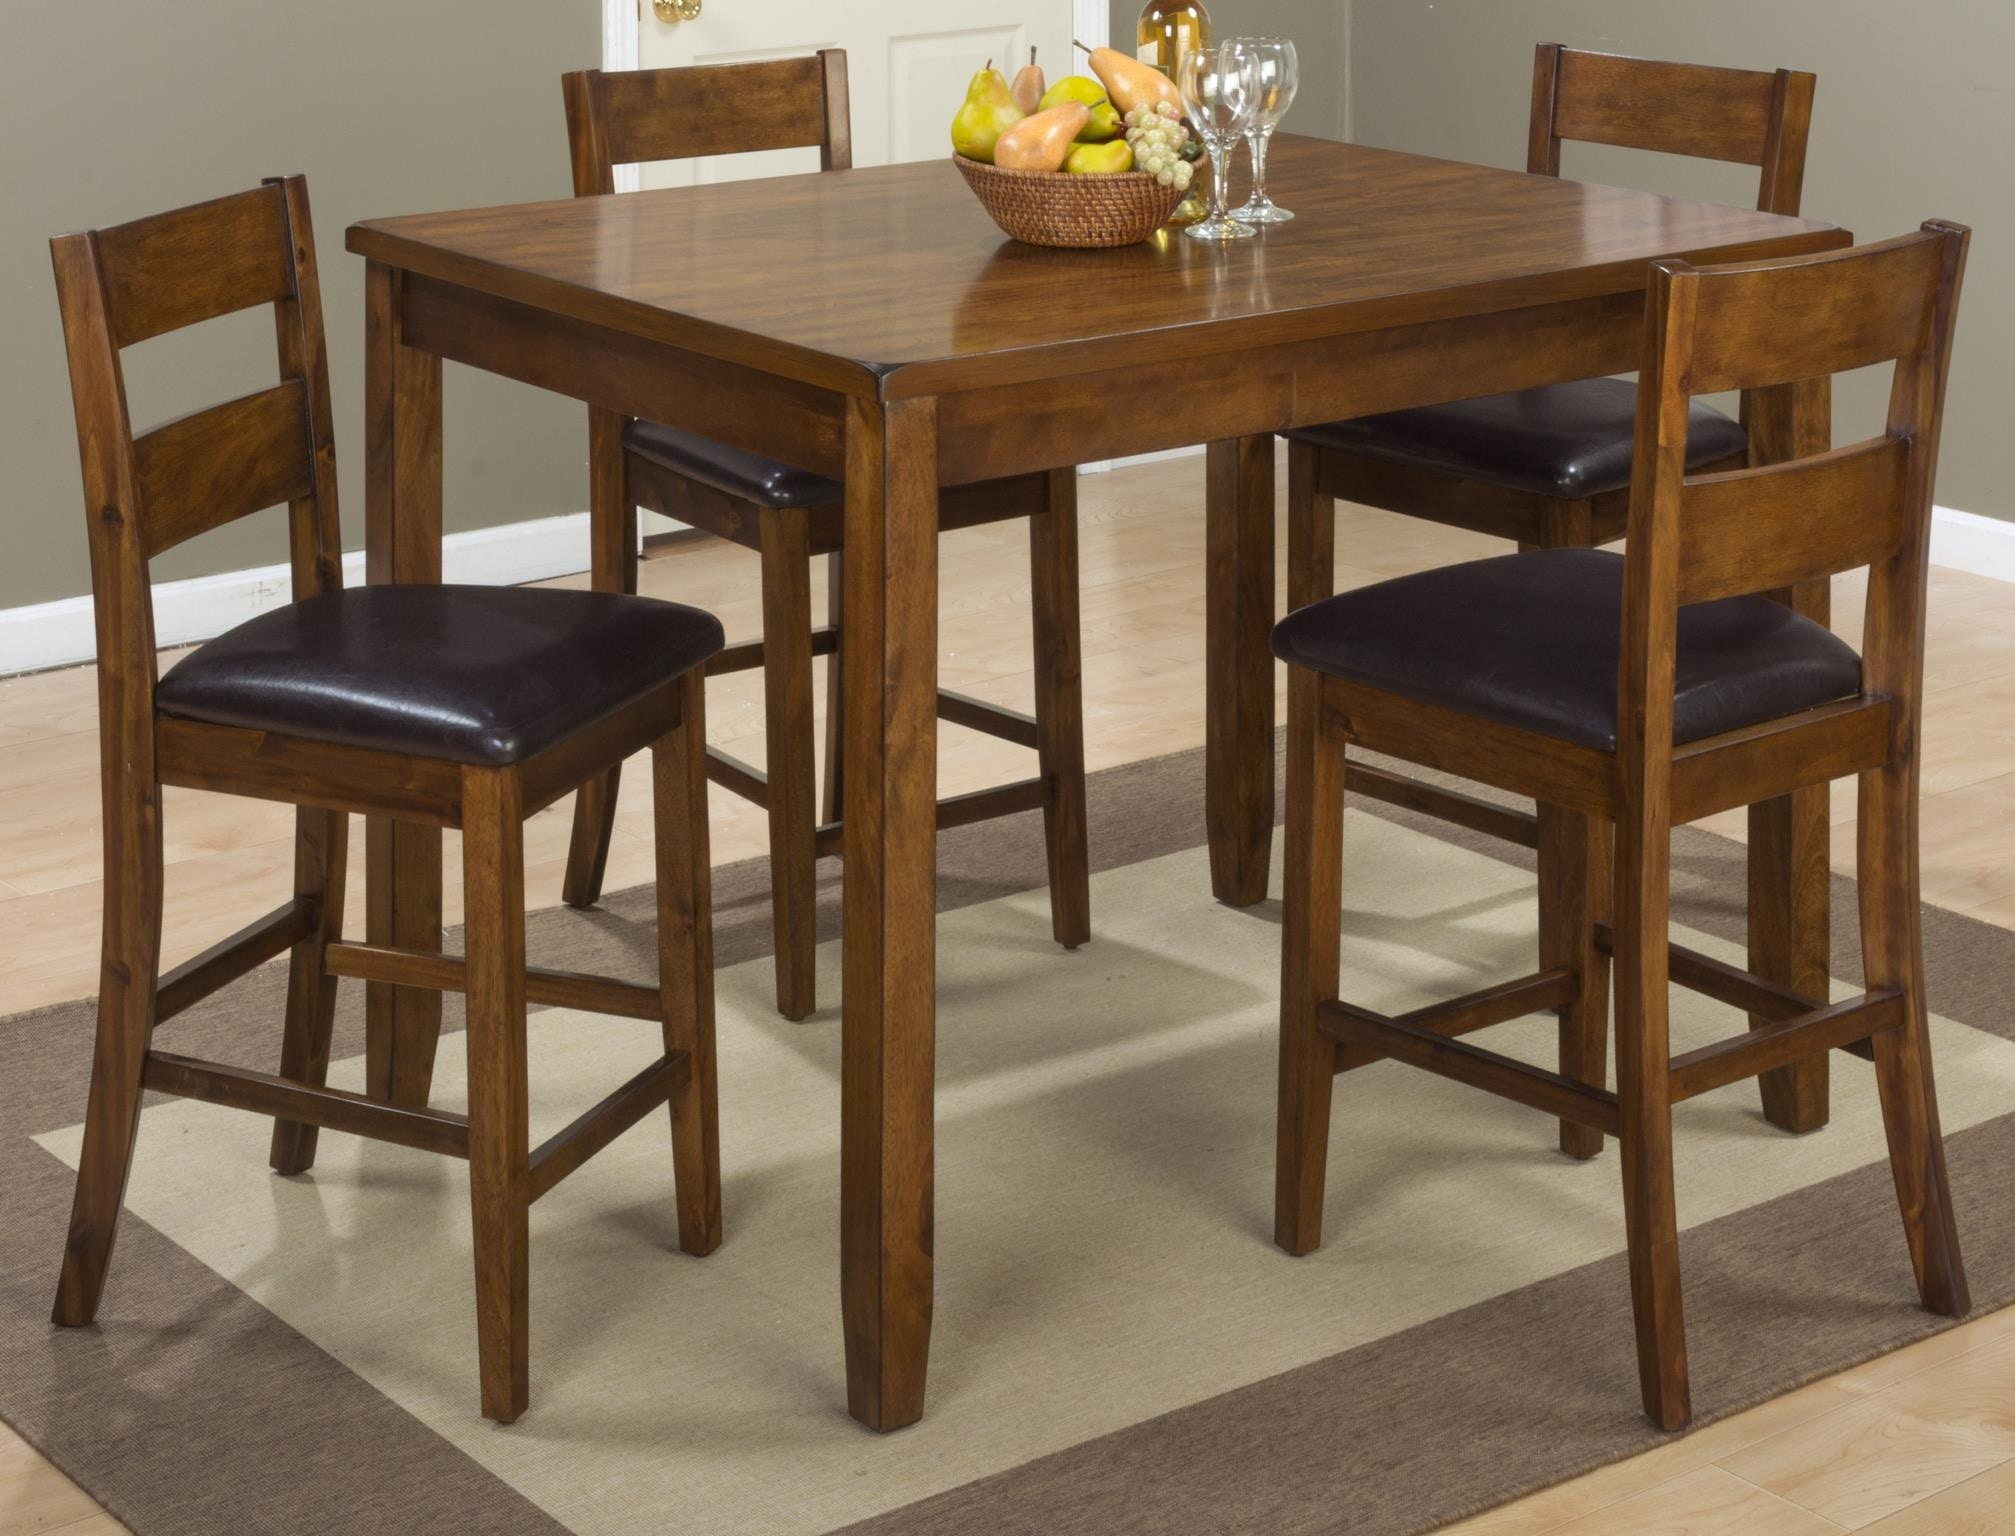 Jofran Pub Table/Chairs 603024